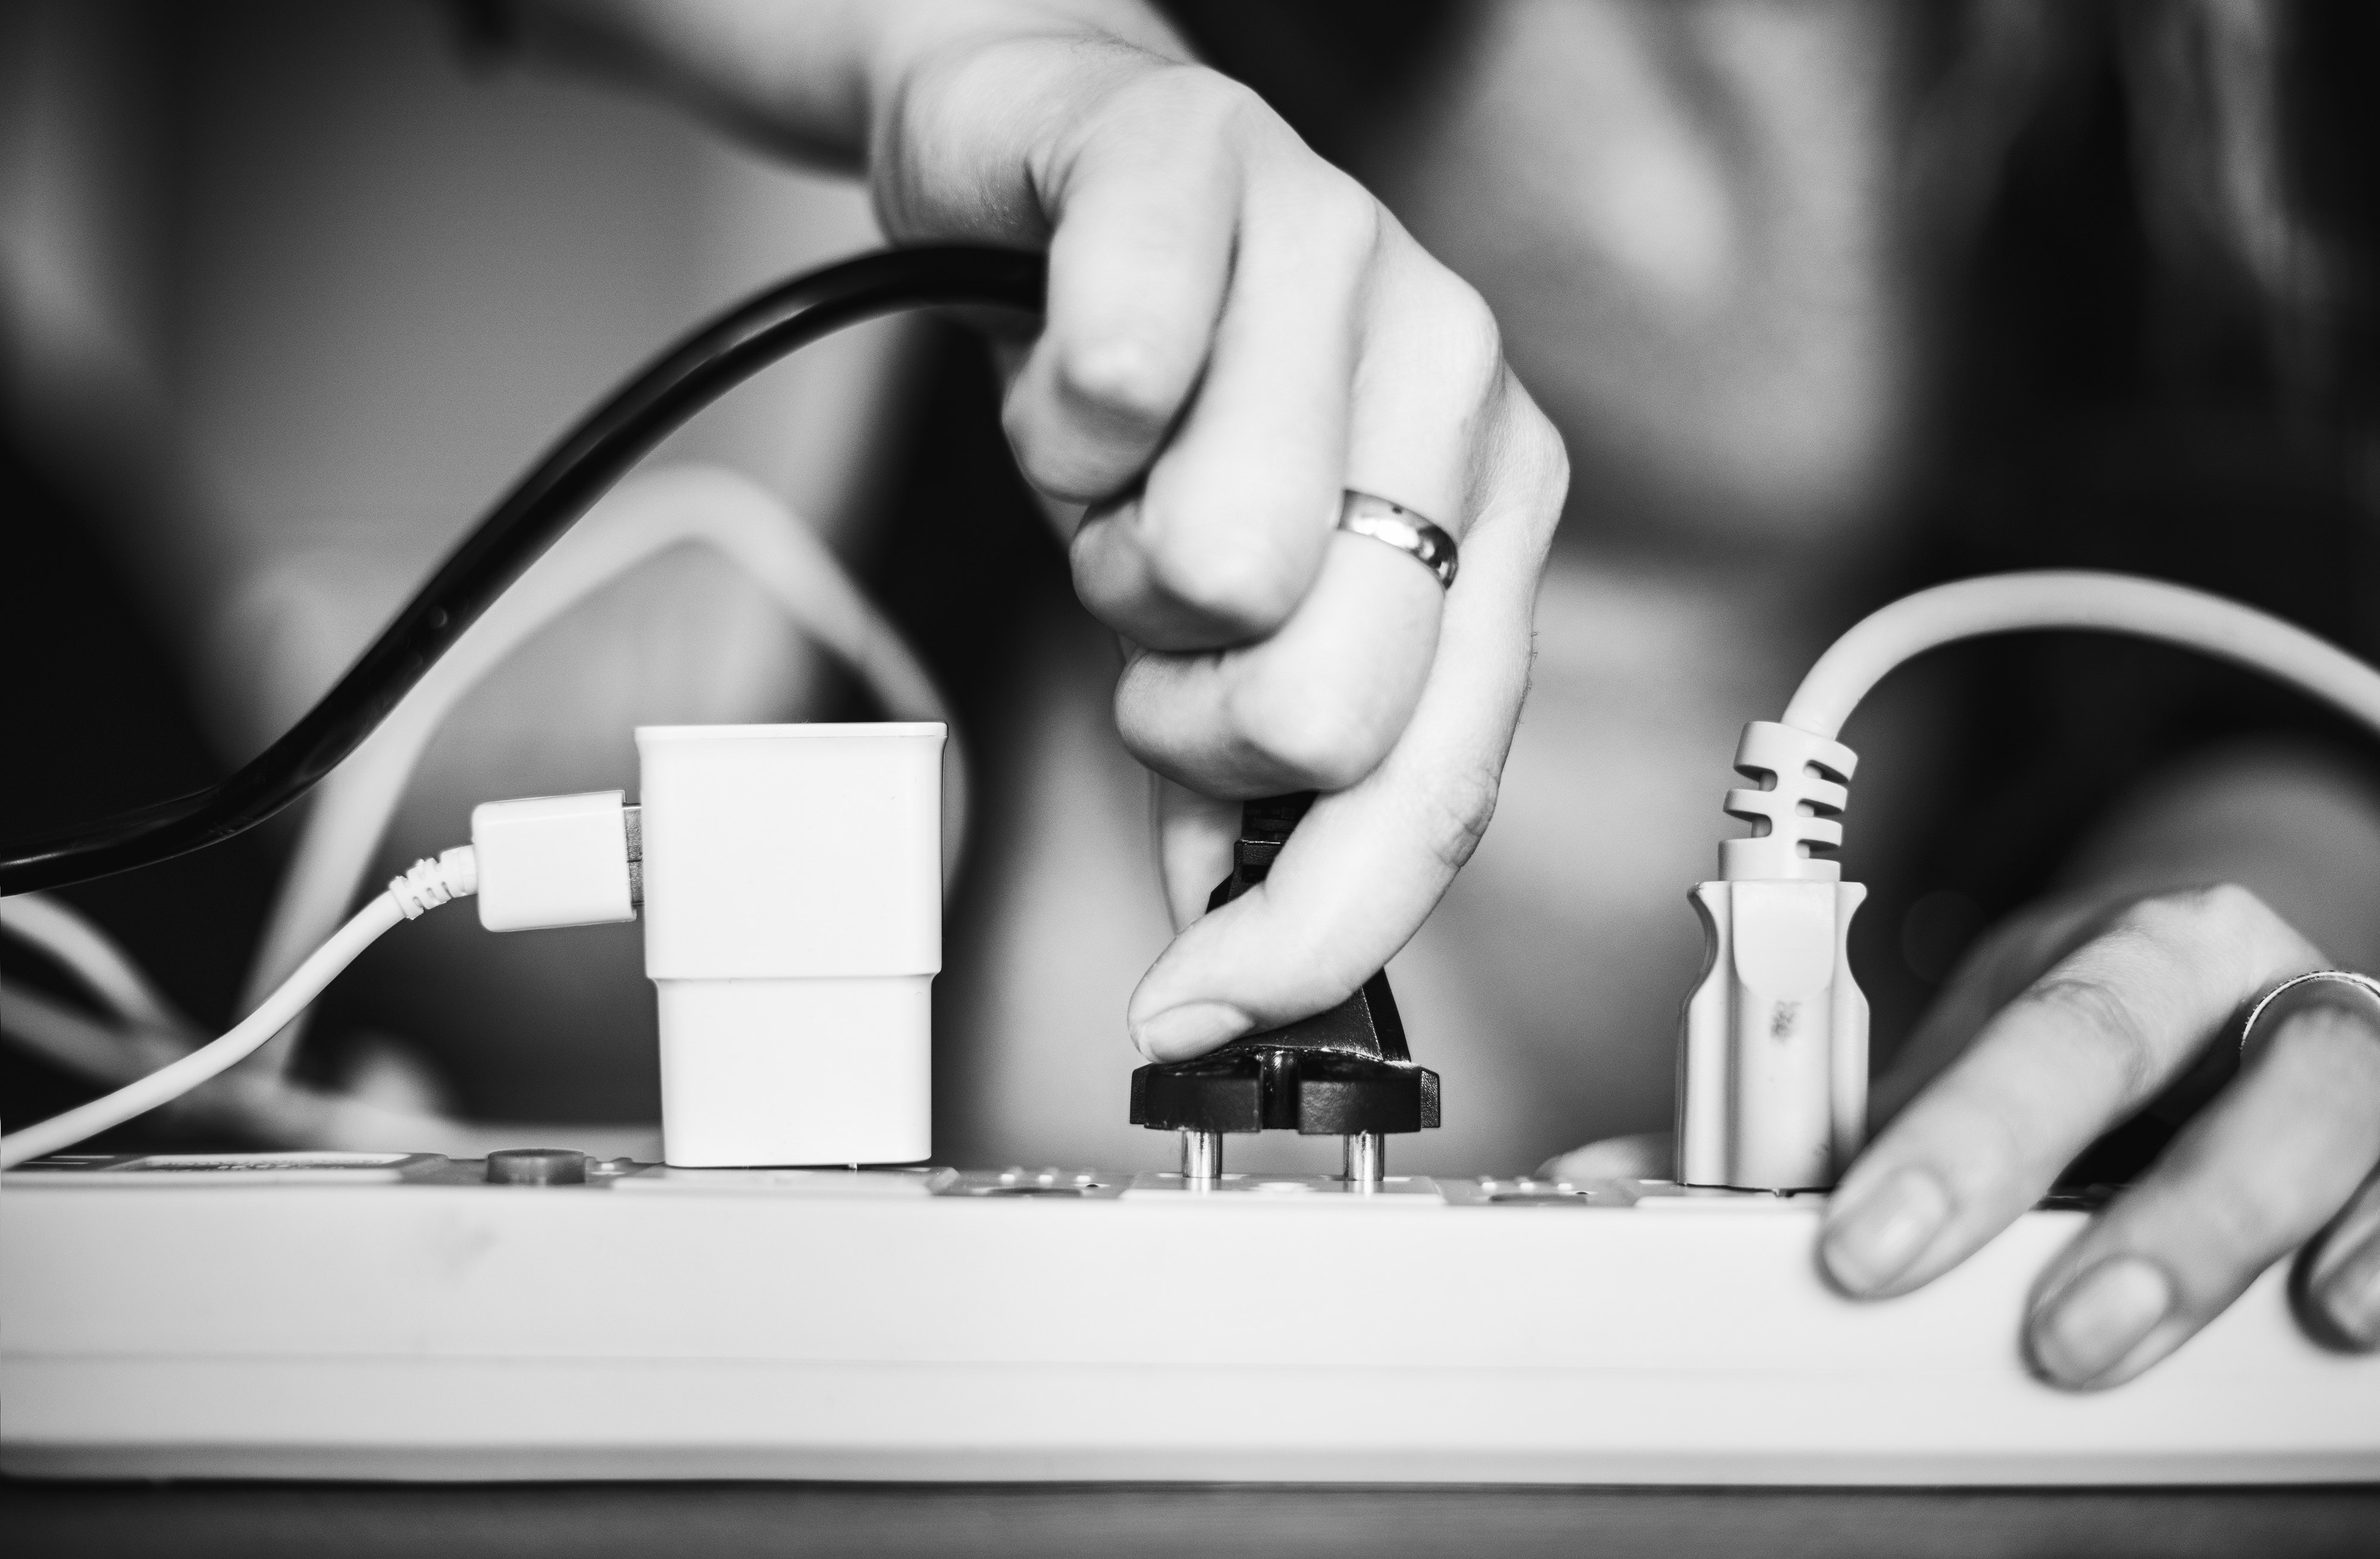 black-and-white-blurred-background-cables-1426702.jpg